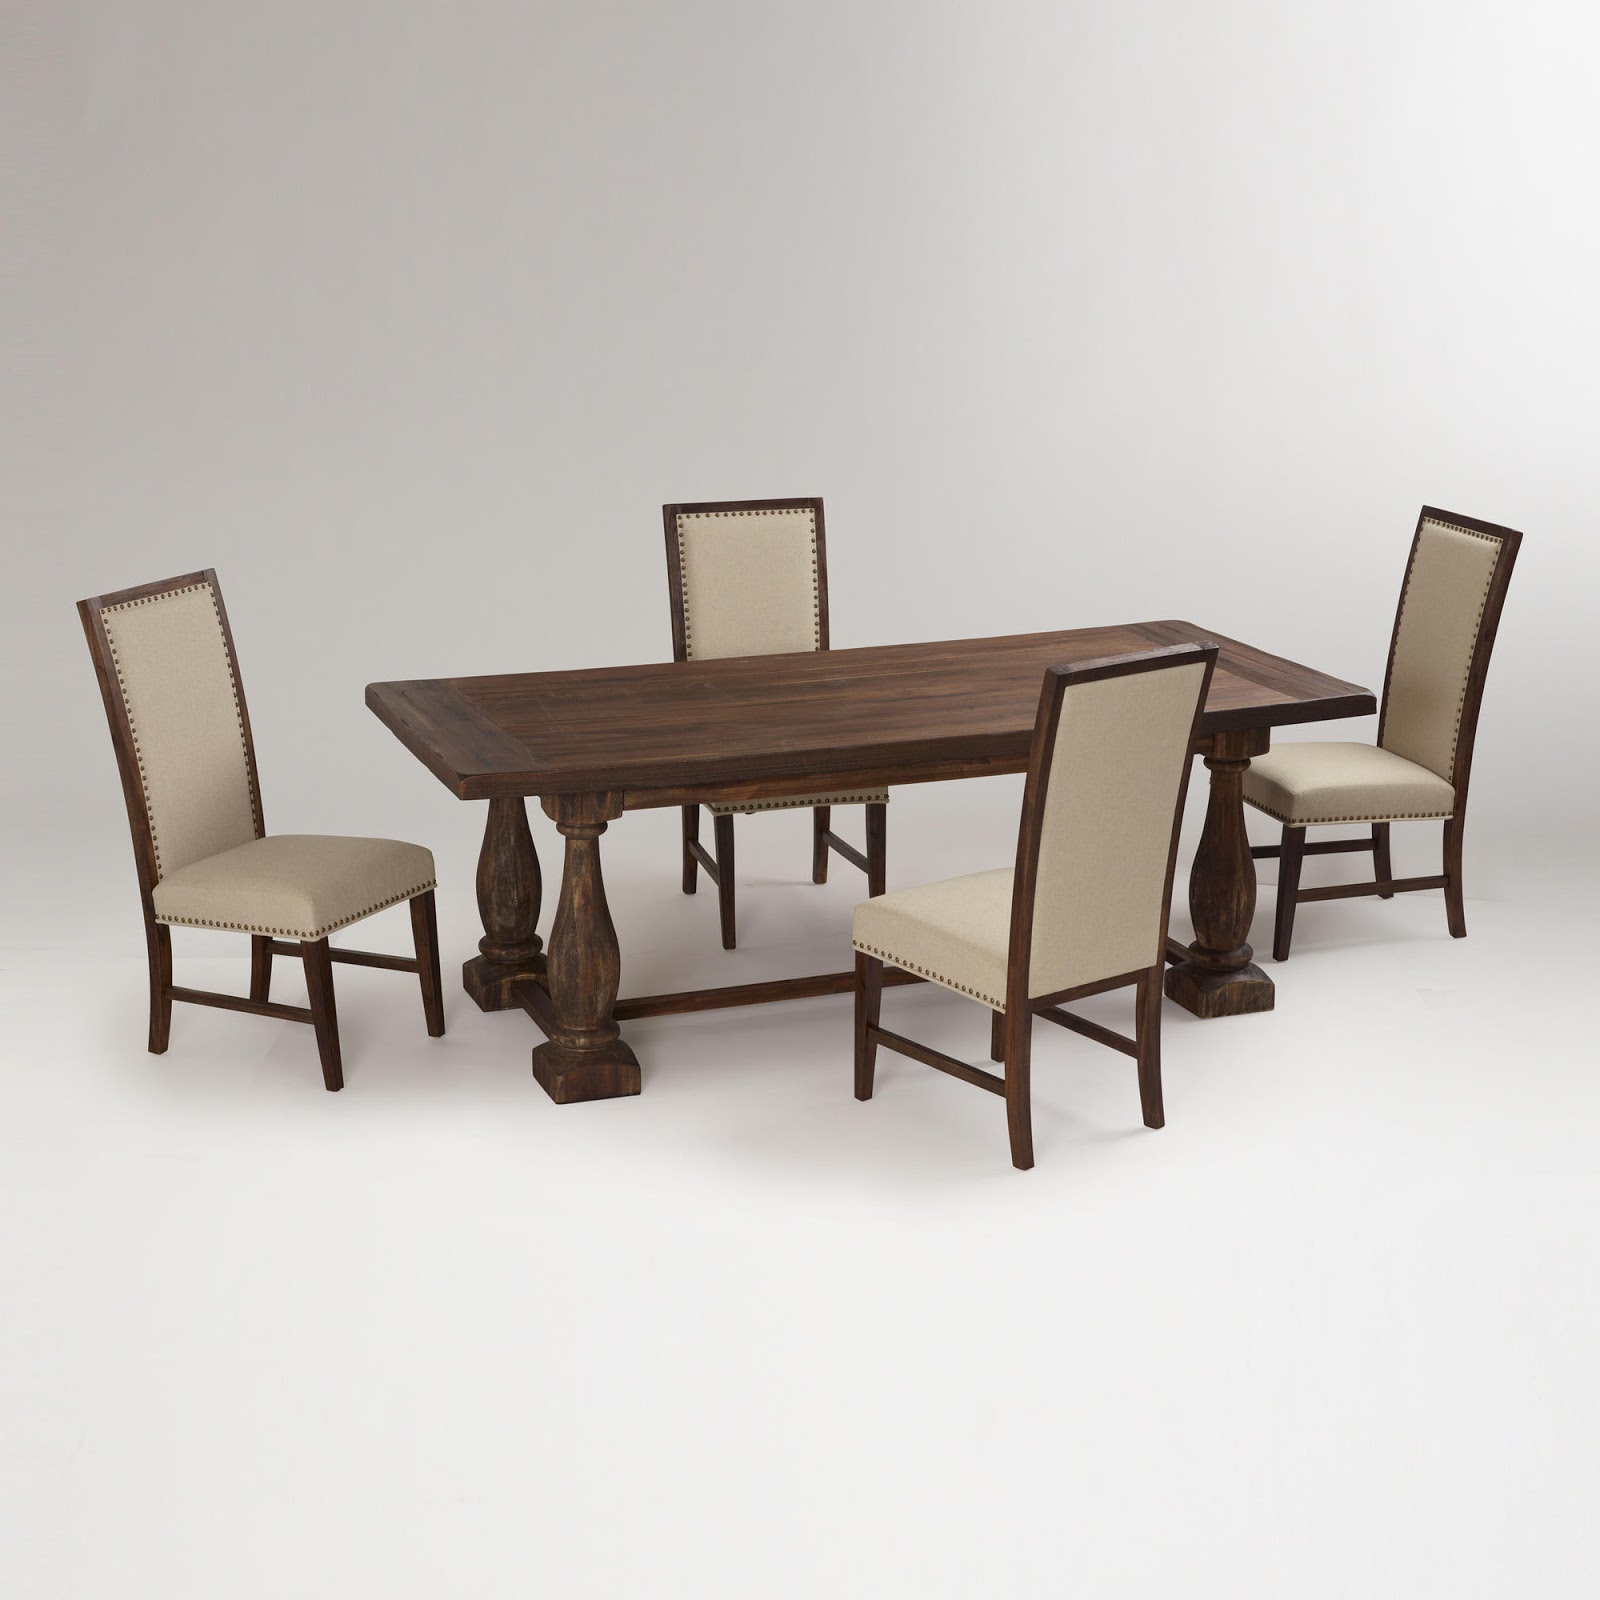 Dining Table: Who Makes Restoration Hardware Dining Tables